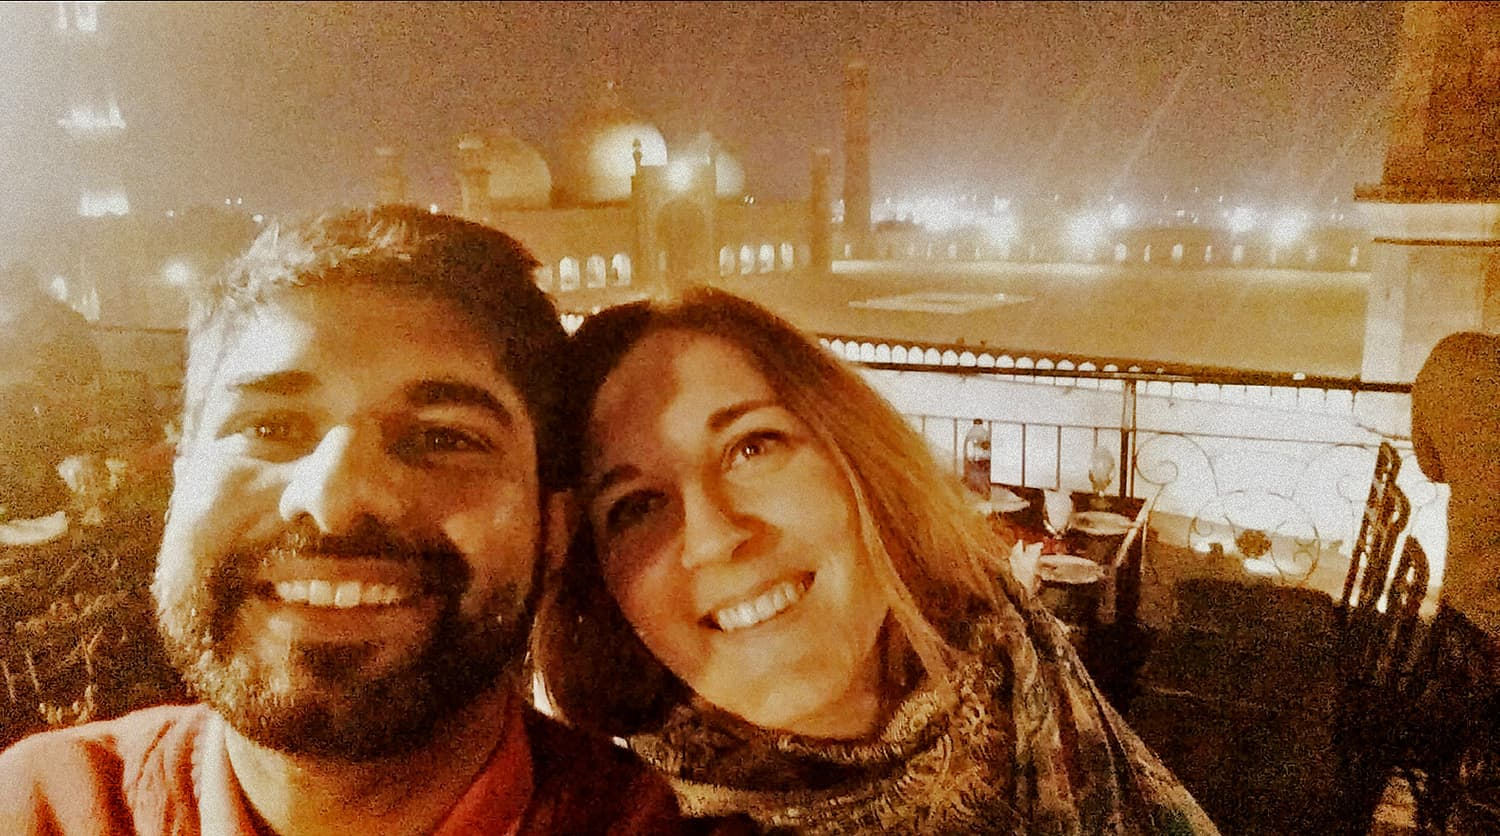 Who does't want a photo with the majestic Badshahi mosque in the background?